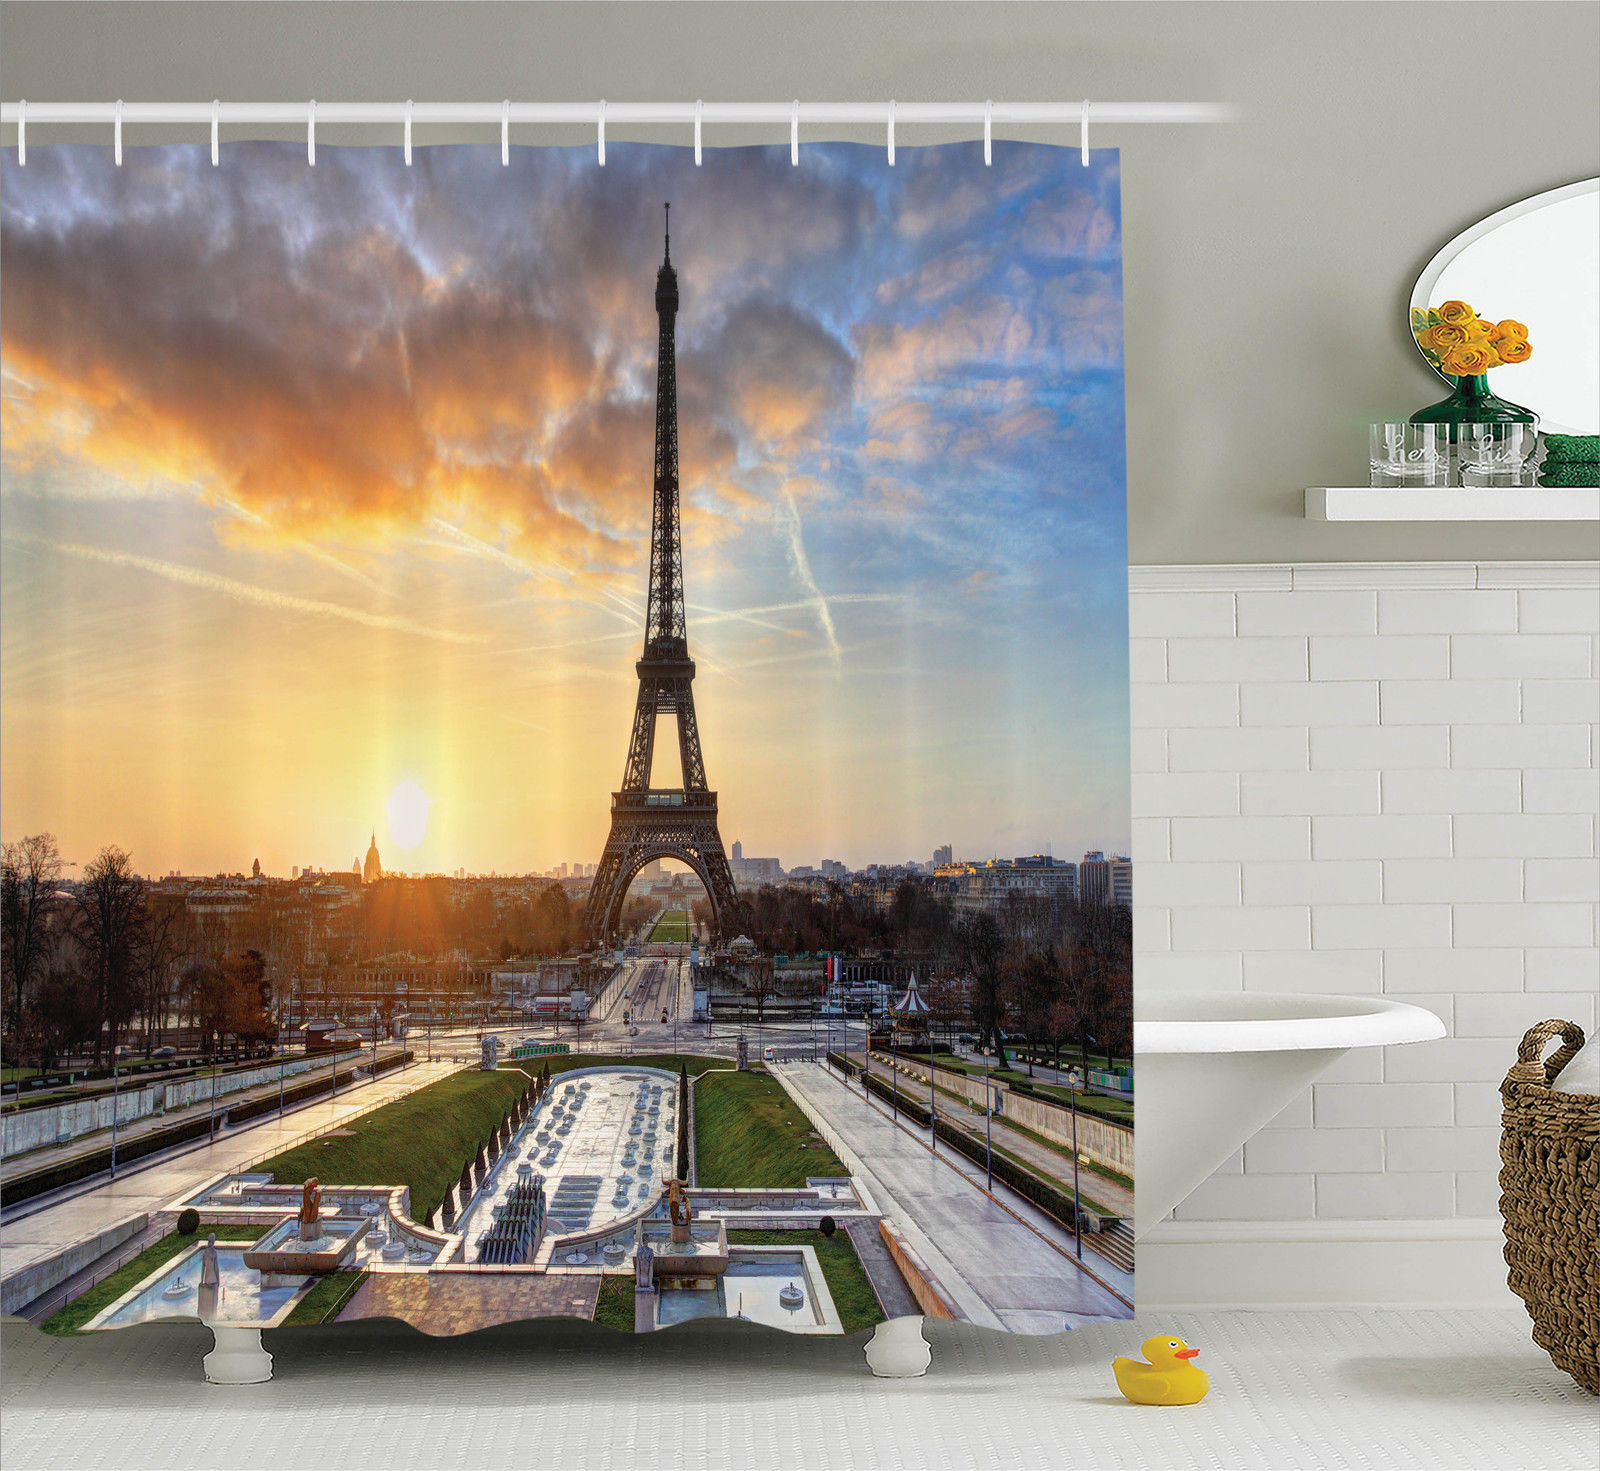 Eiffel Tower Decor Sunrise In Paris, With Eiffel Tower Holidays Getaways Decorative Scenic Picture, Bathroom Accessories, 69W X 84L Inches Extra Long, By Ambesonne